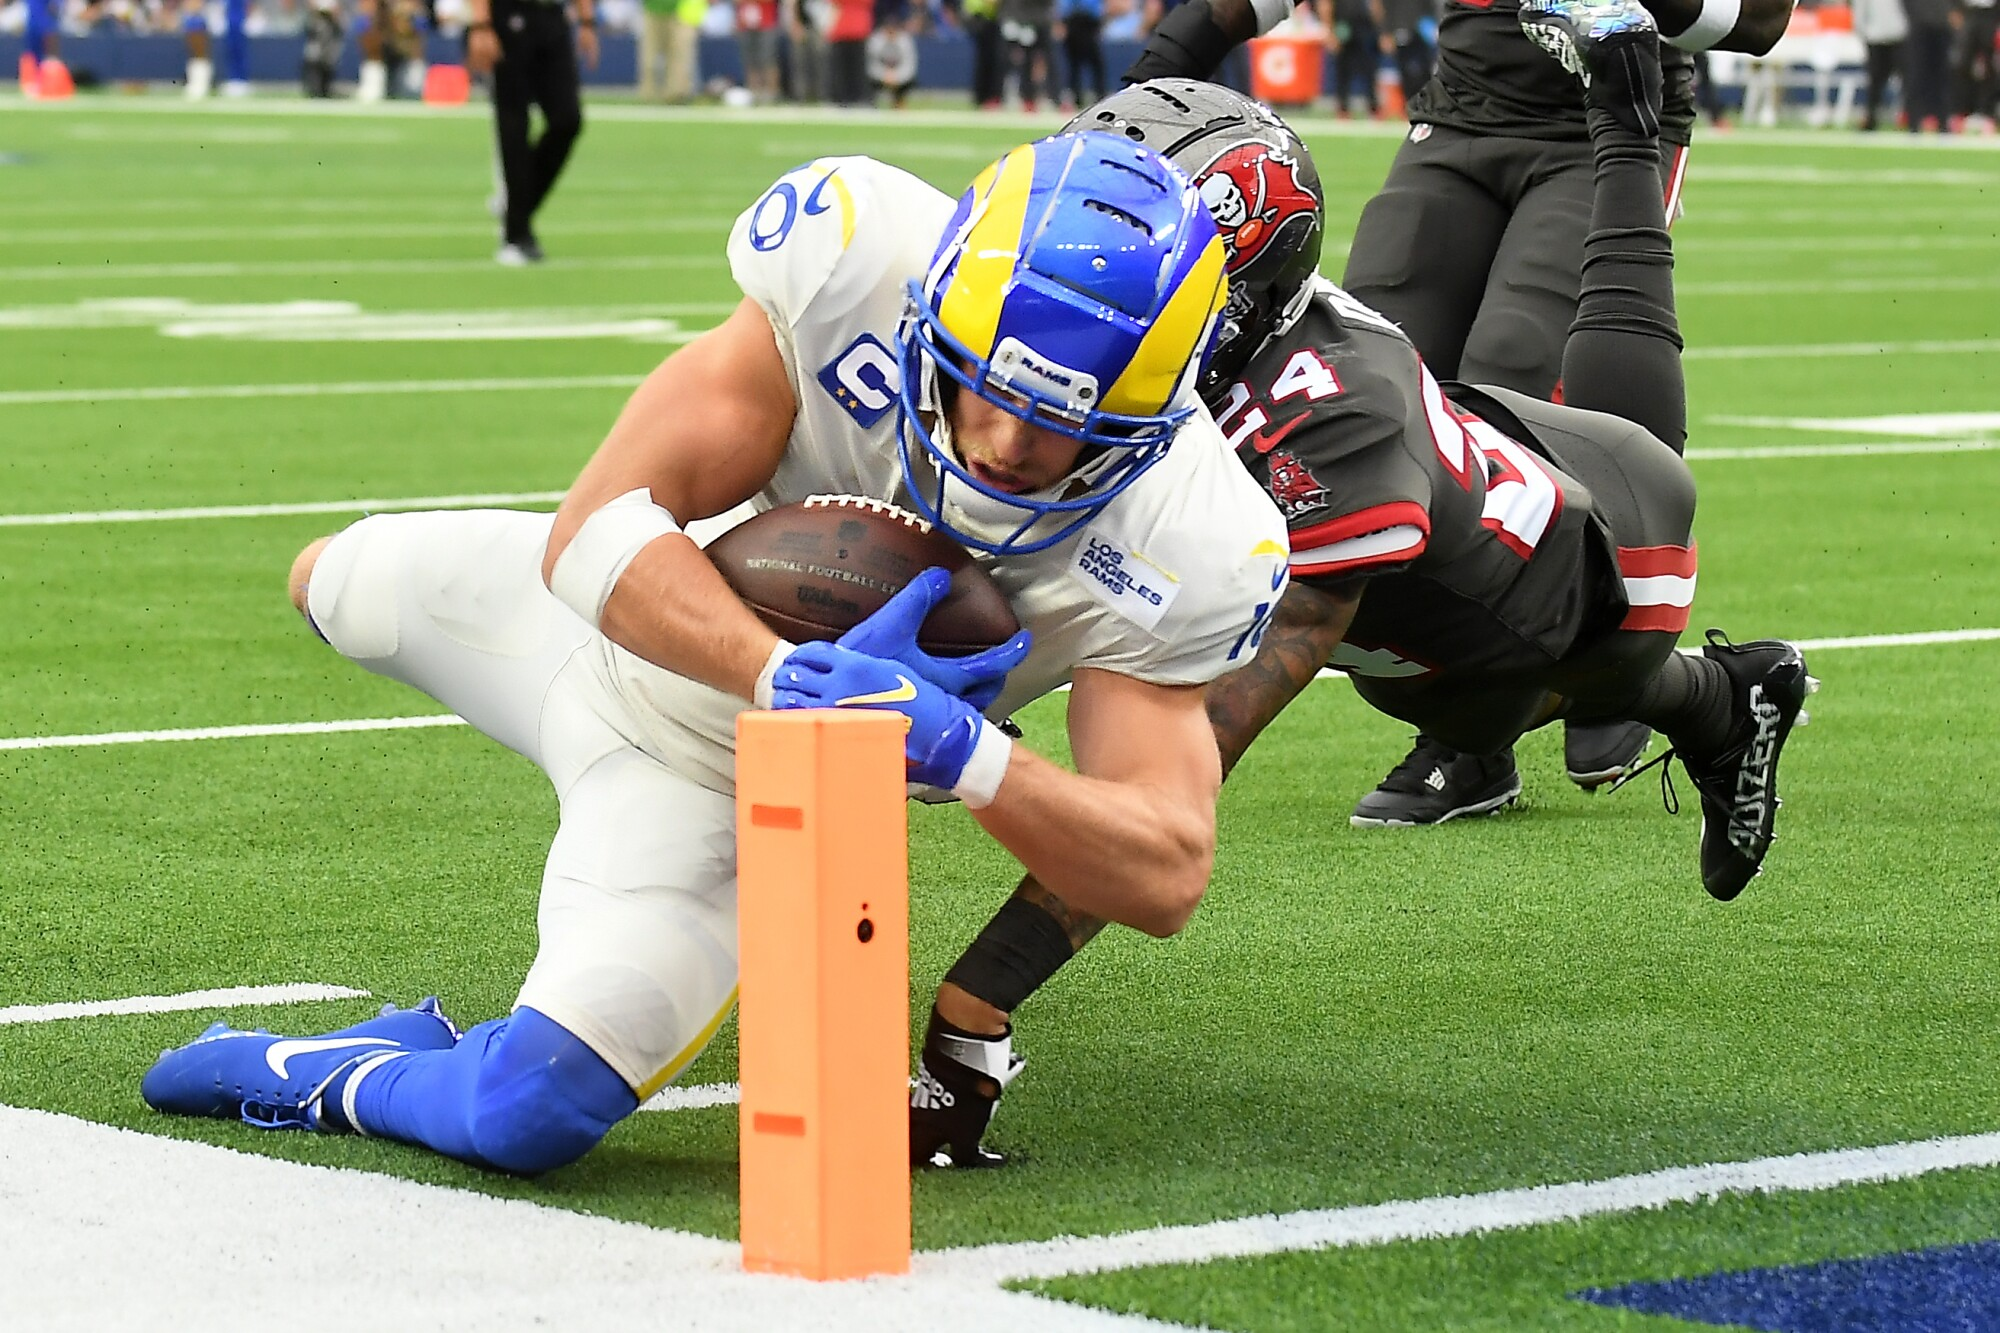 Rams wide receiver Cooper Kupp dives for the end zone to score a touchdown in front of Buccaneers cornerback Carlton Davis.